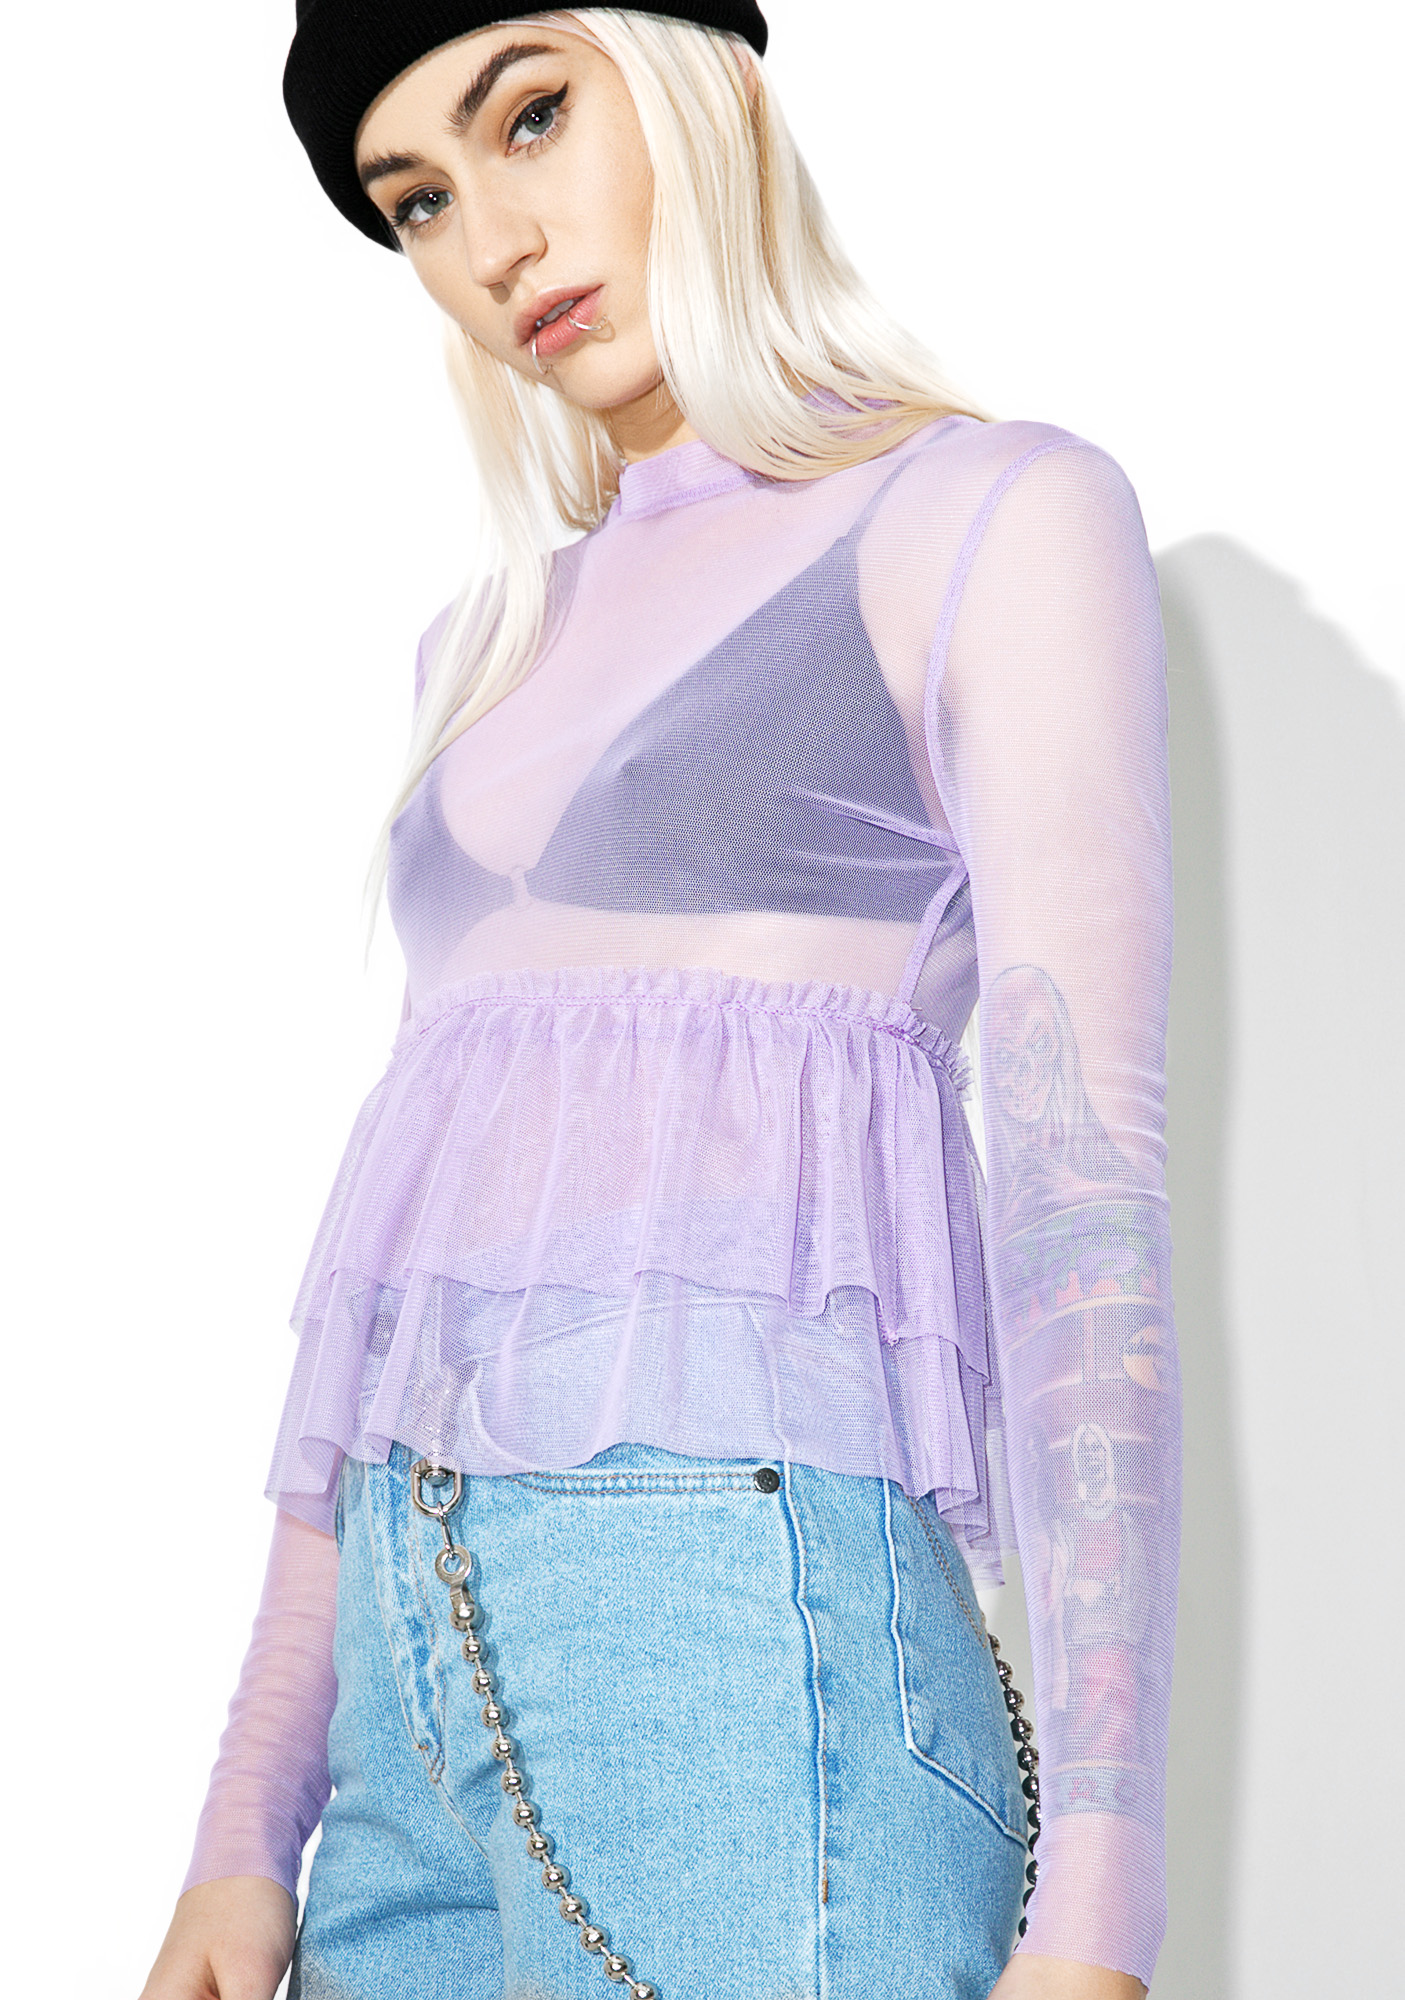 The Ragged Priest Parma Top